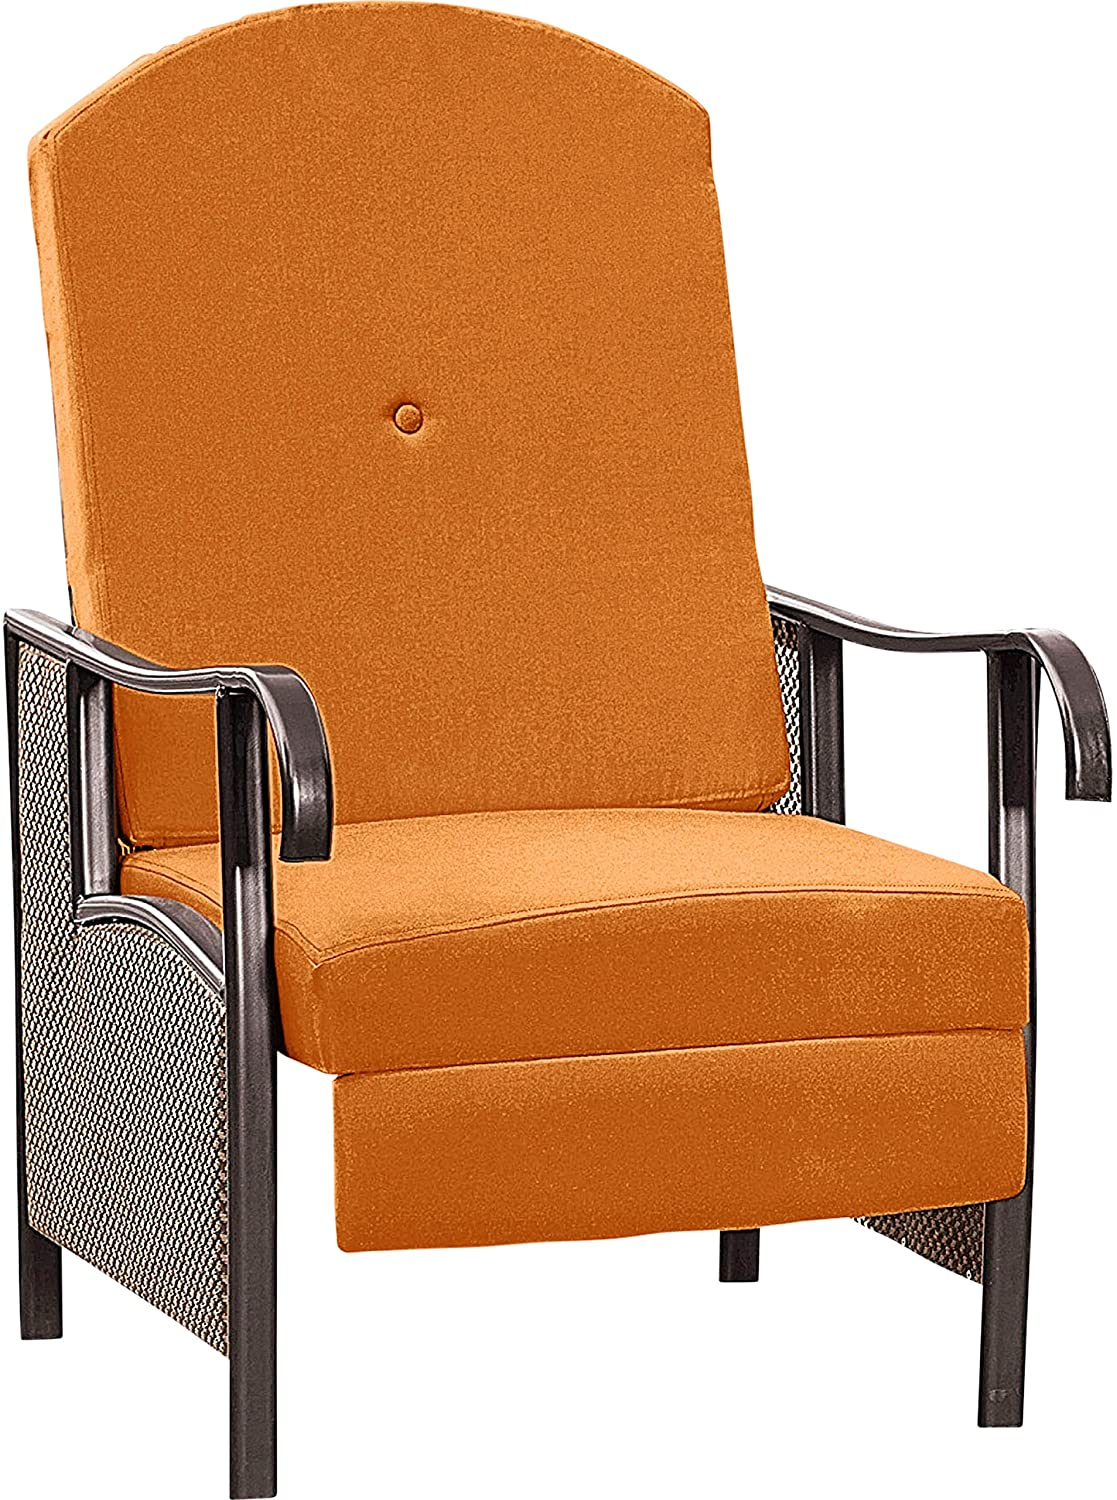 BrylaneHome Extra Wide Outdoor Recliner With Cushion